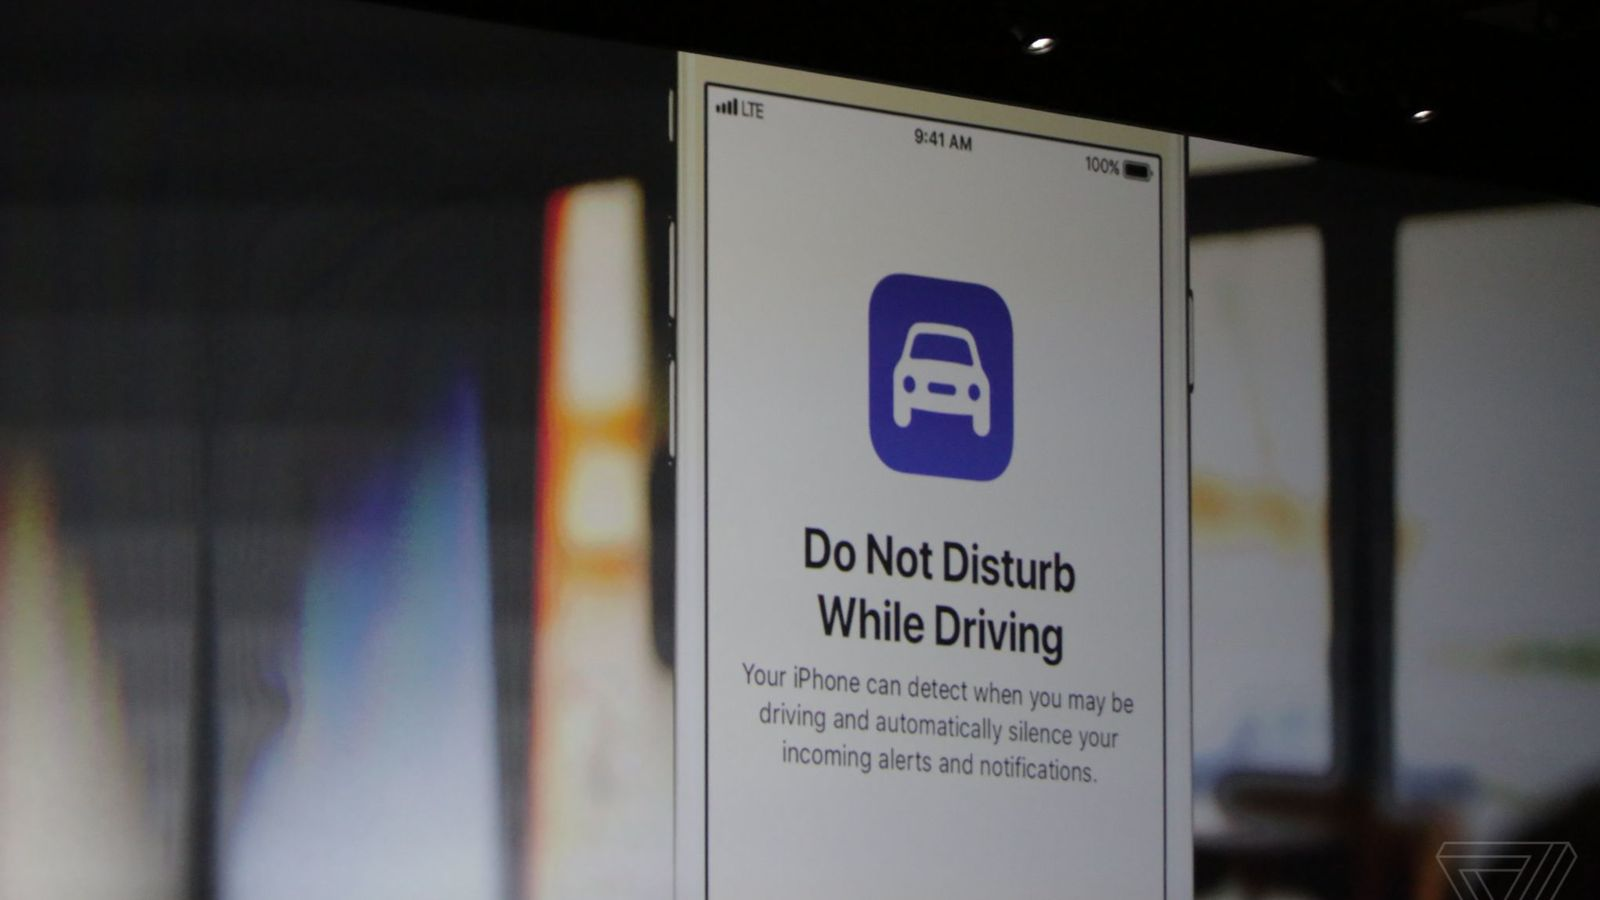 New iPhone Feature Will Block Calls While Driving